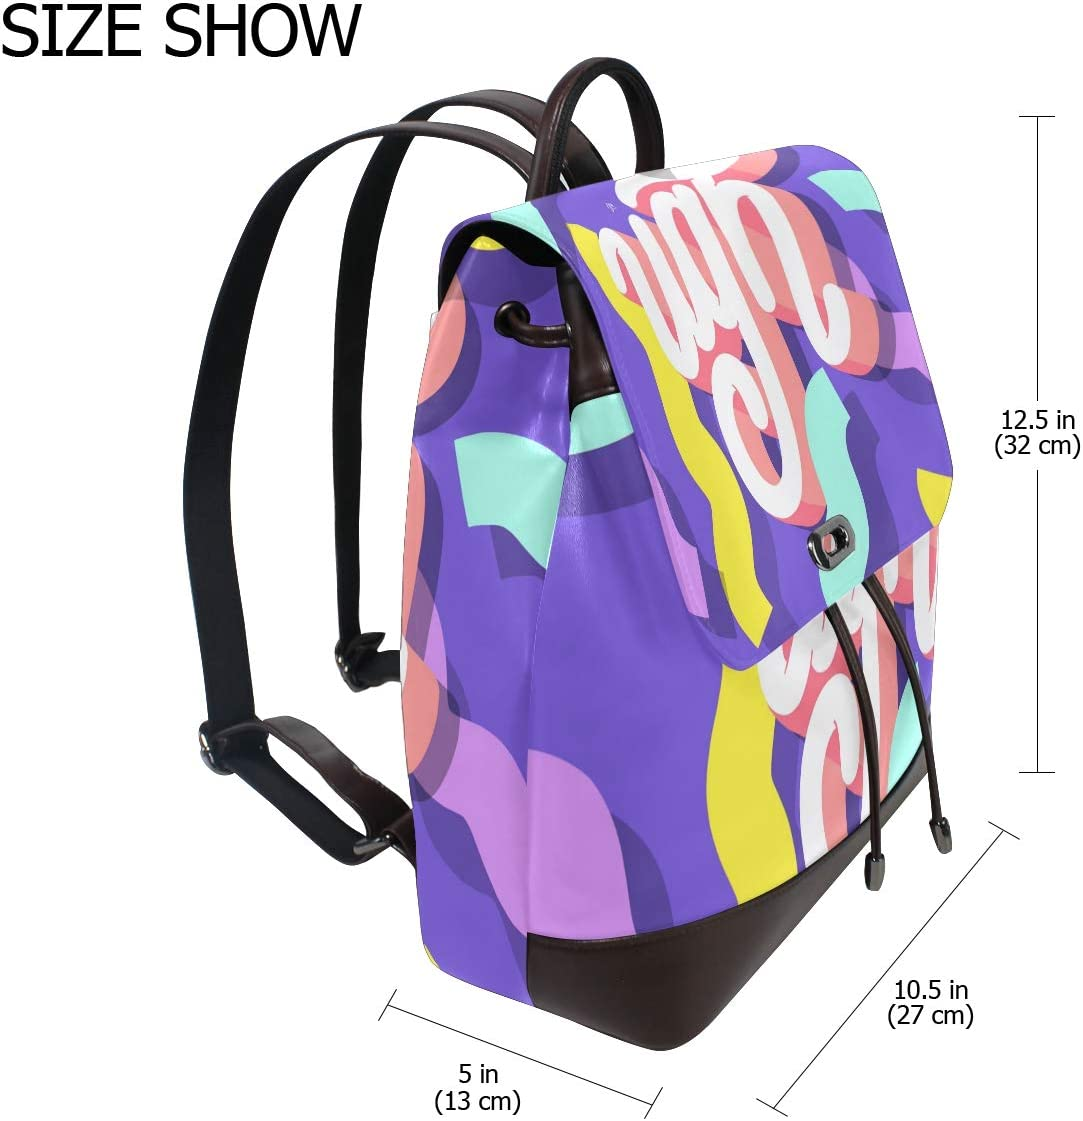 Storage Bag For Men Women Girls Boys Personalized Pattern Ugh Shopping Bag Backpack Travel Bag School Bag